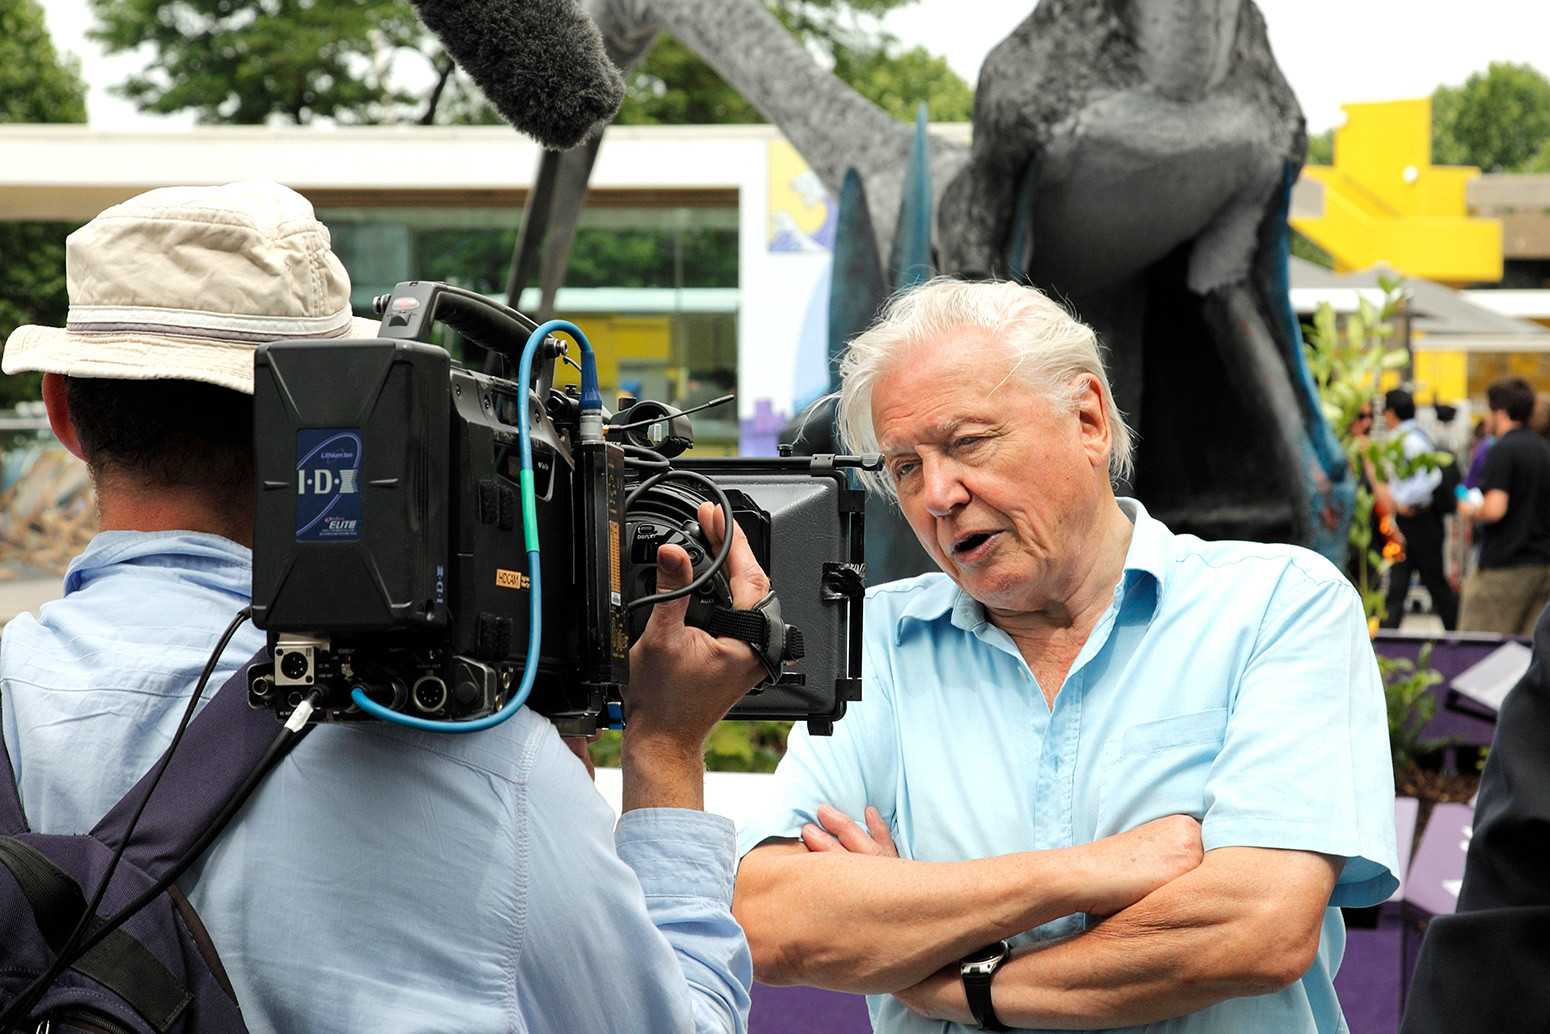 Sir David Attenborough being filmed beside an exhibition of Pterosaurs at the Southbank Centre, London.